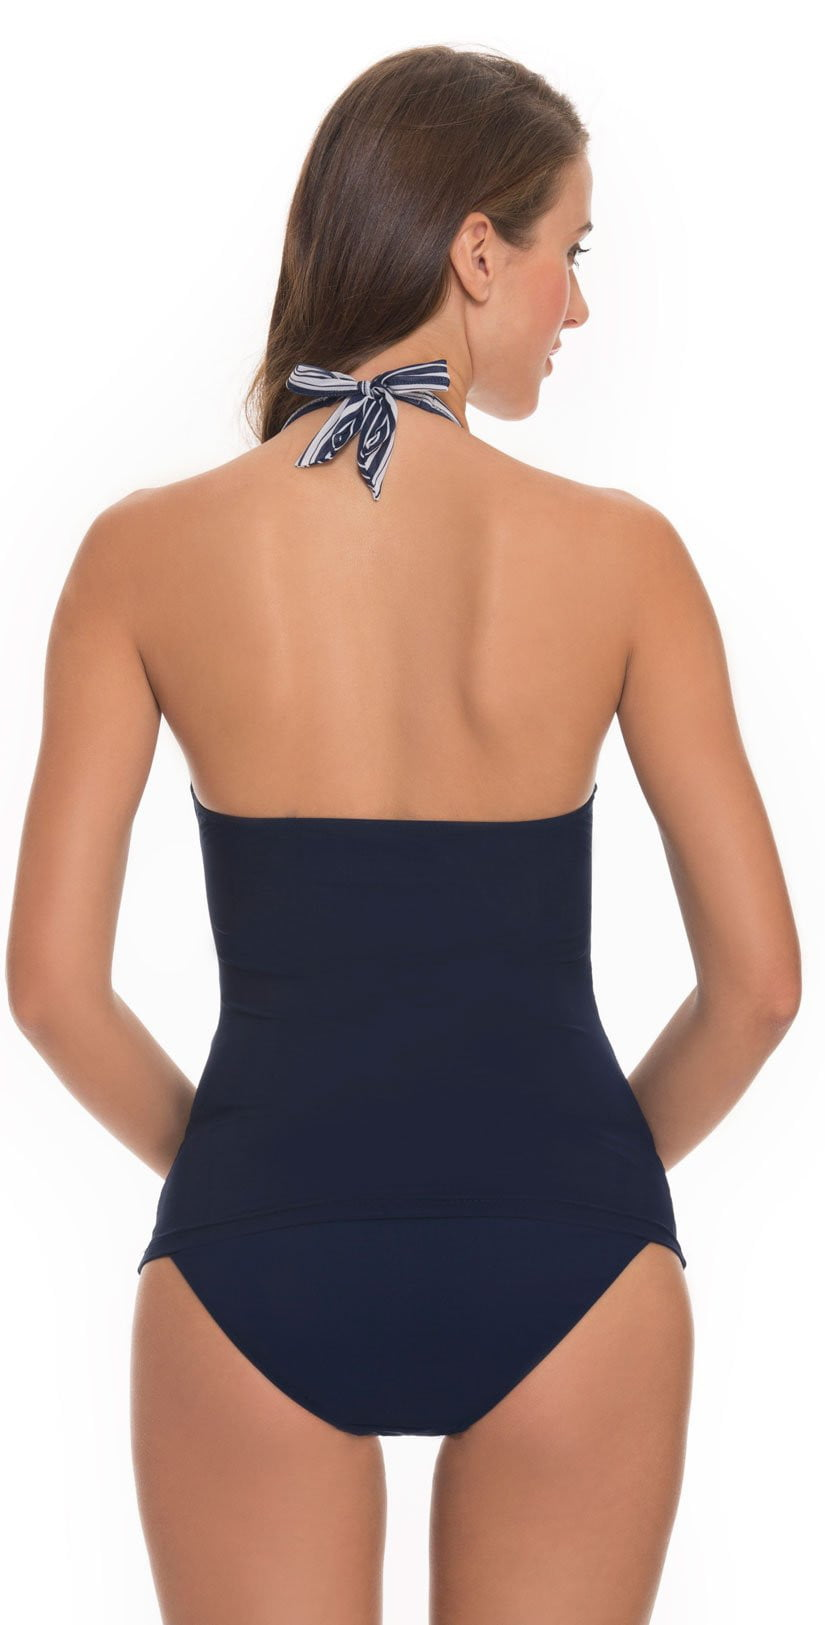 Profile By Gottex Cote d' Azur Halter Tankini Top Back View